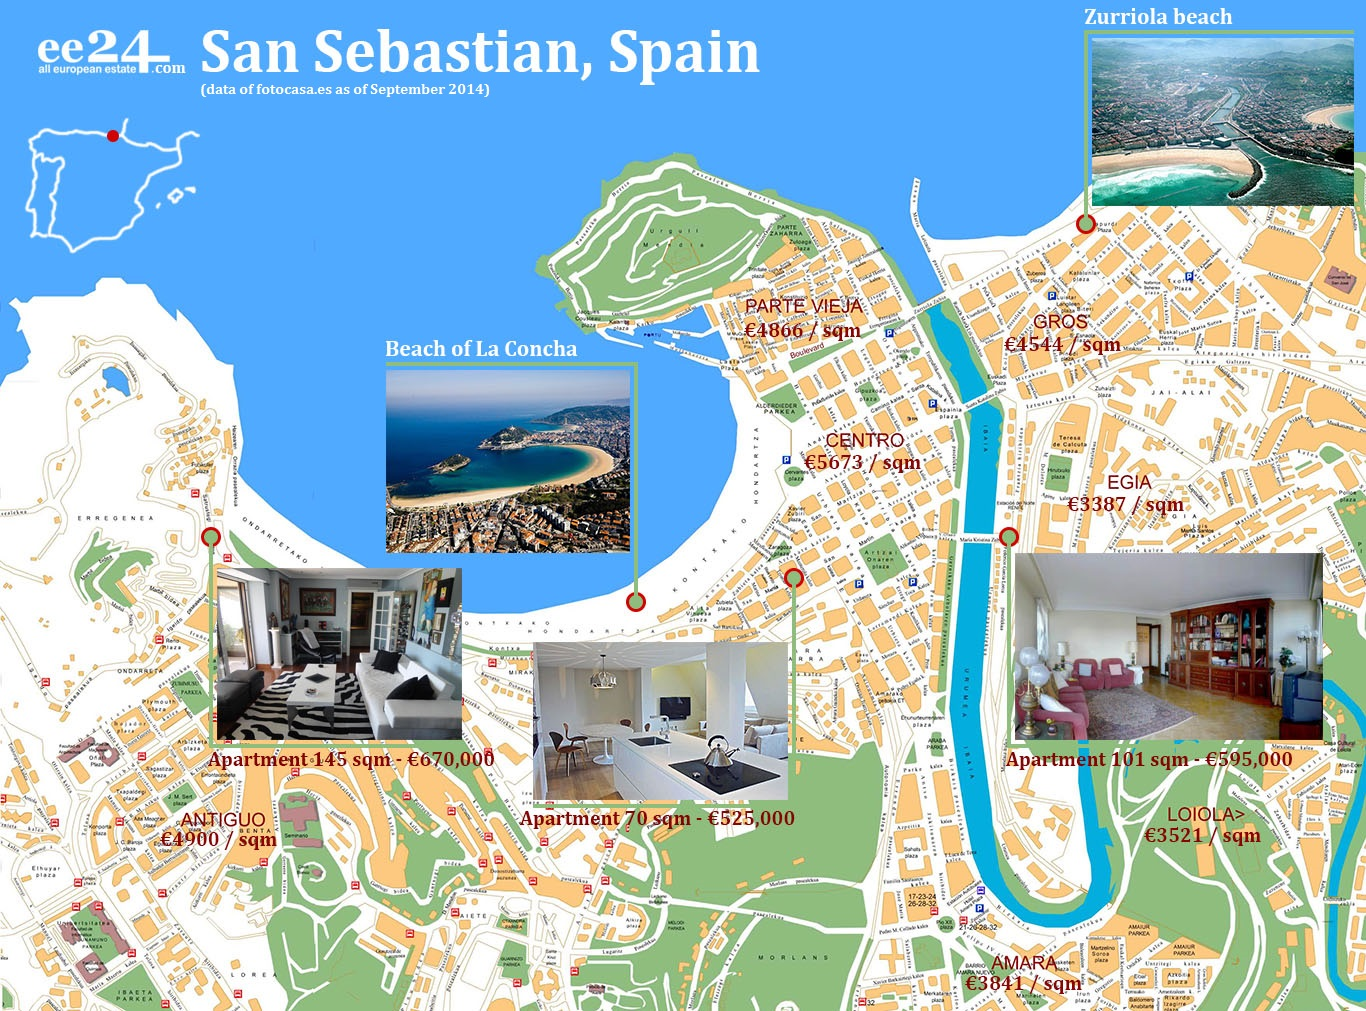 San Sebastian: London prices for Spanish property - EE24